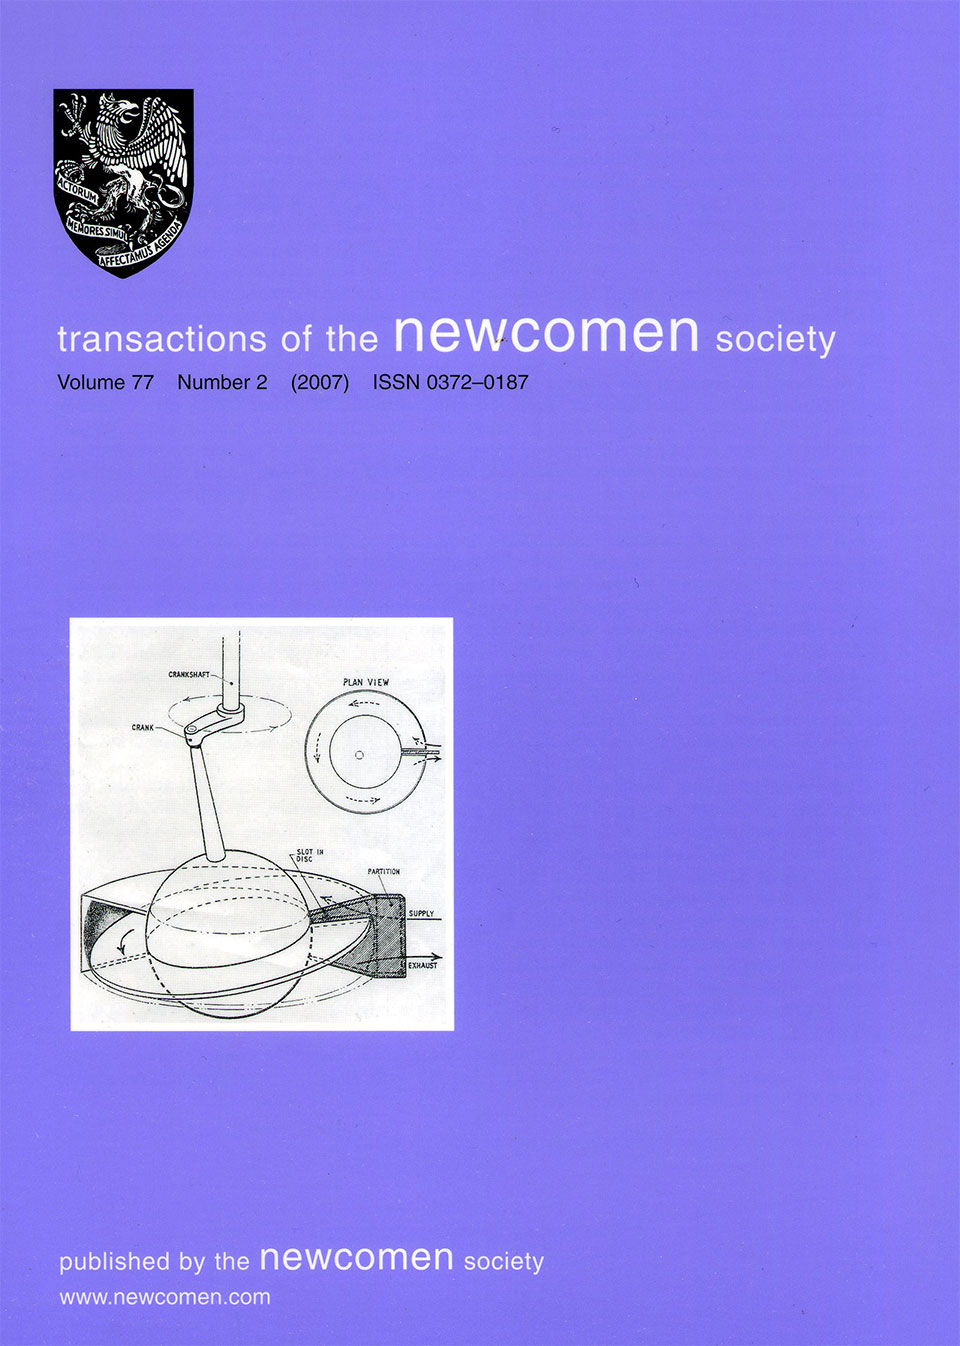 The Journal - V77 No2 2007 - cover